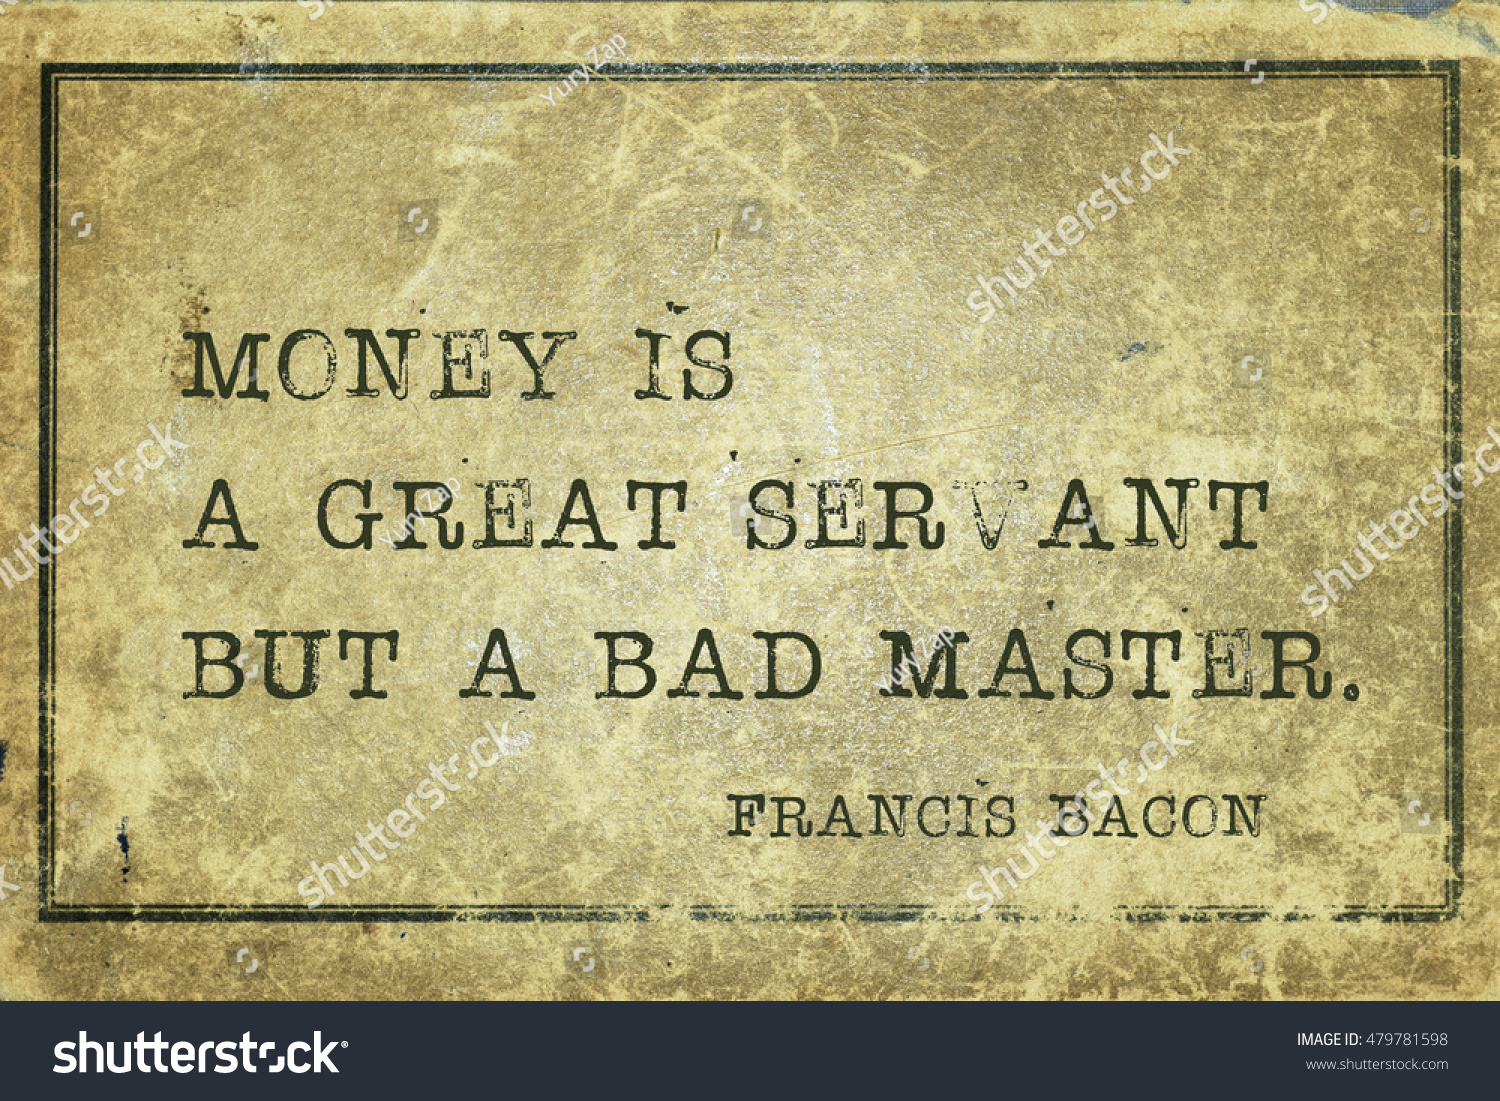 science is a good servant but a bad master essay No doubt, money is an essential, almost indispensable article in the present day world it is the' money' through which we can purchase all the necessary comforts and amenities of life.